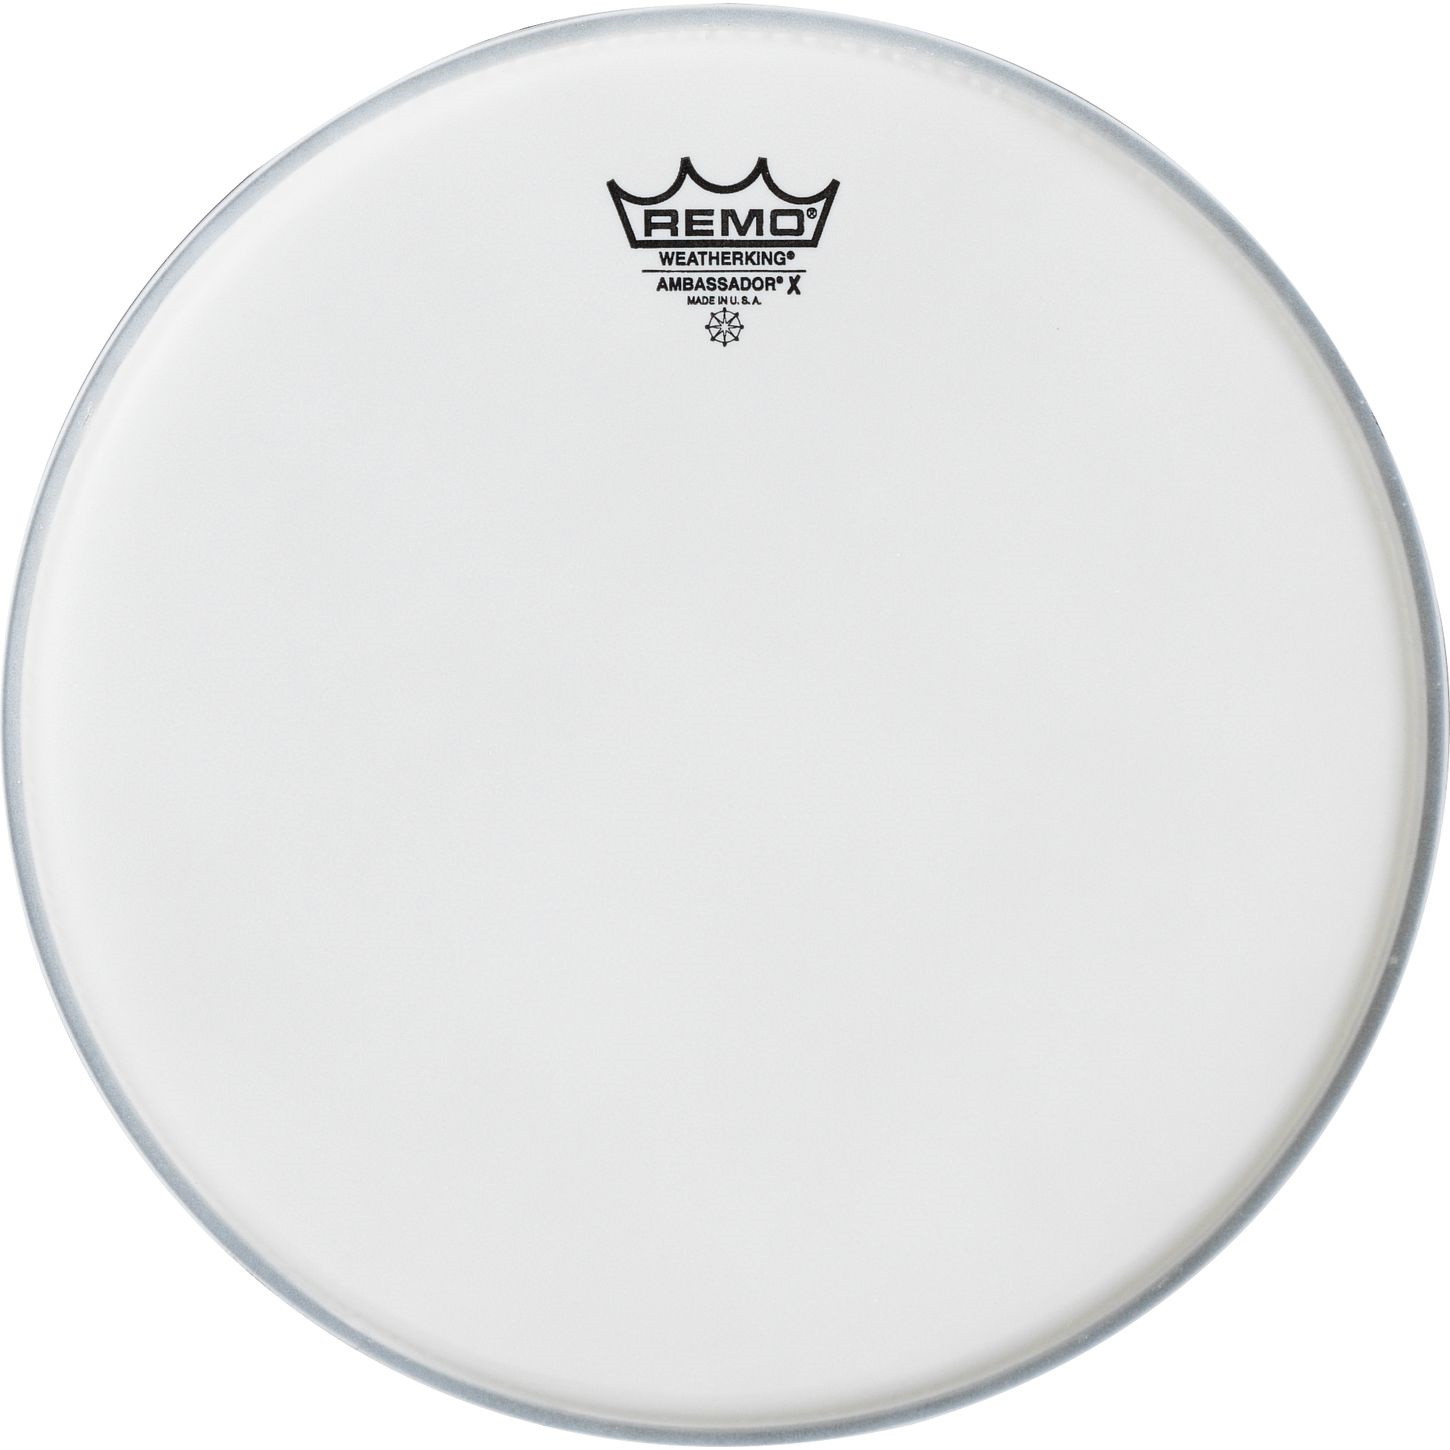 "Remo 15"" Ambassador X Coated"